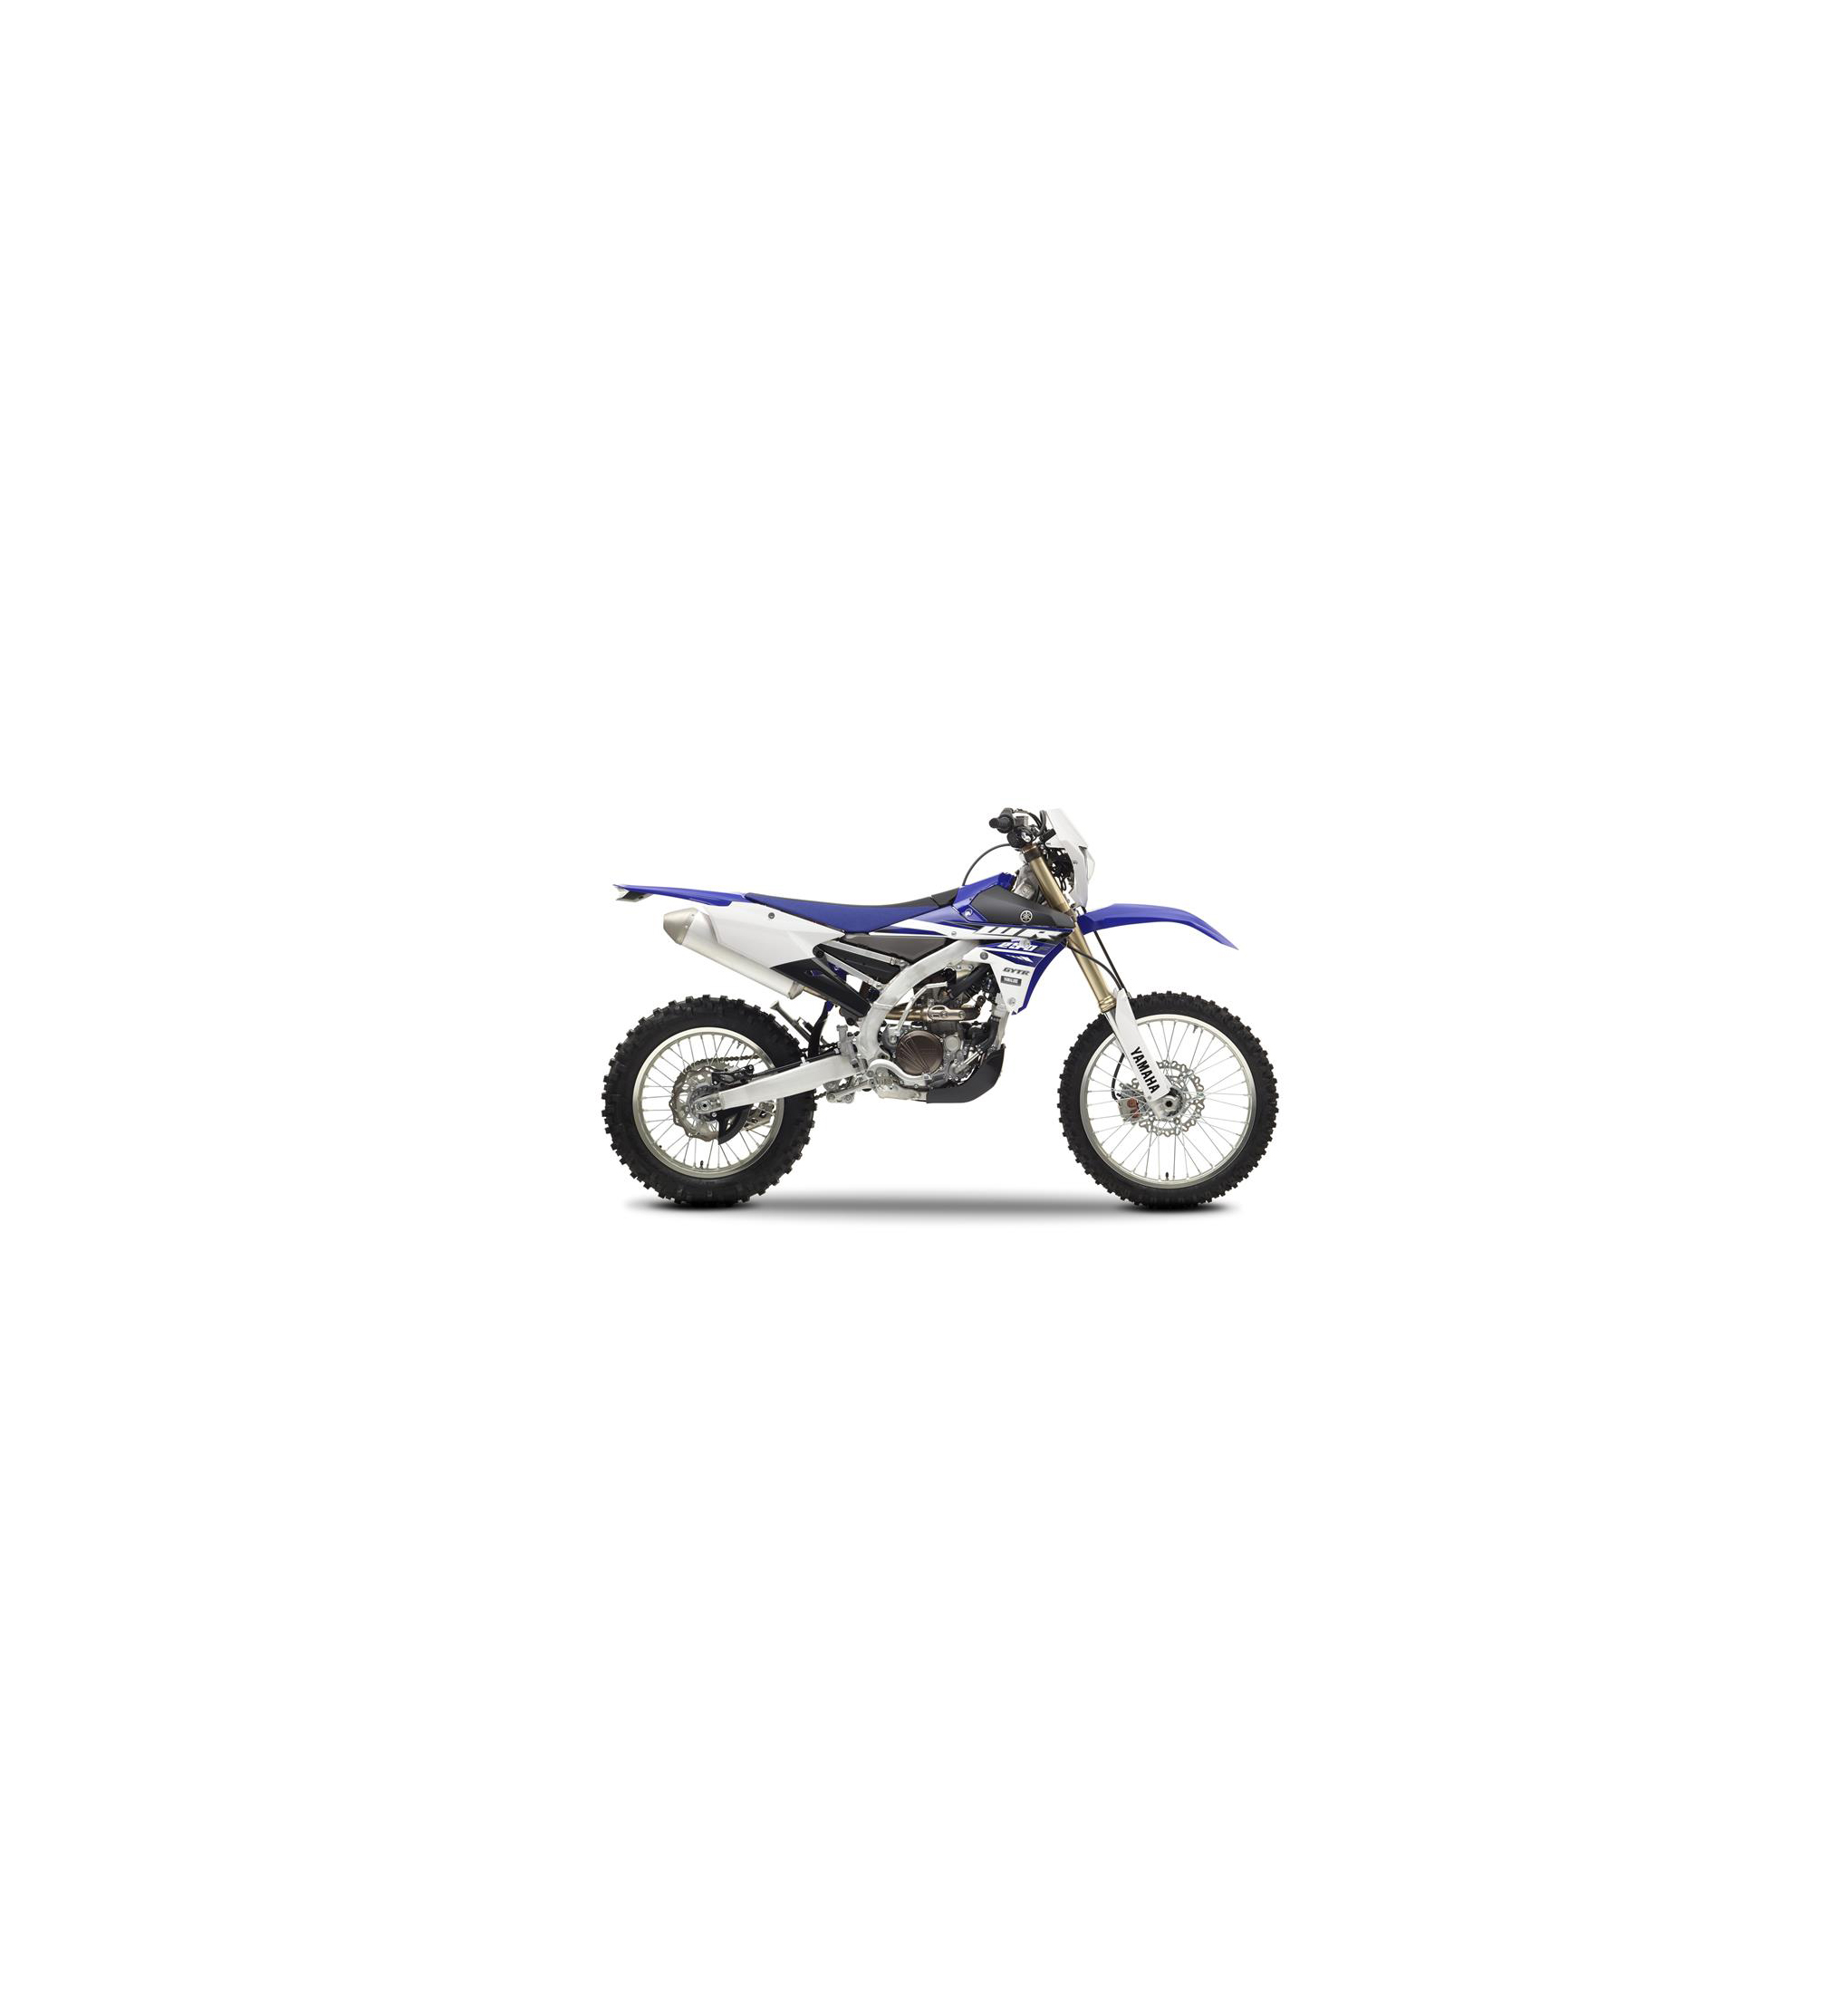 2016 wr250f maintenance schedule